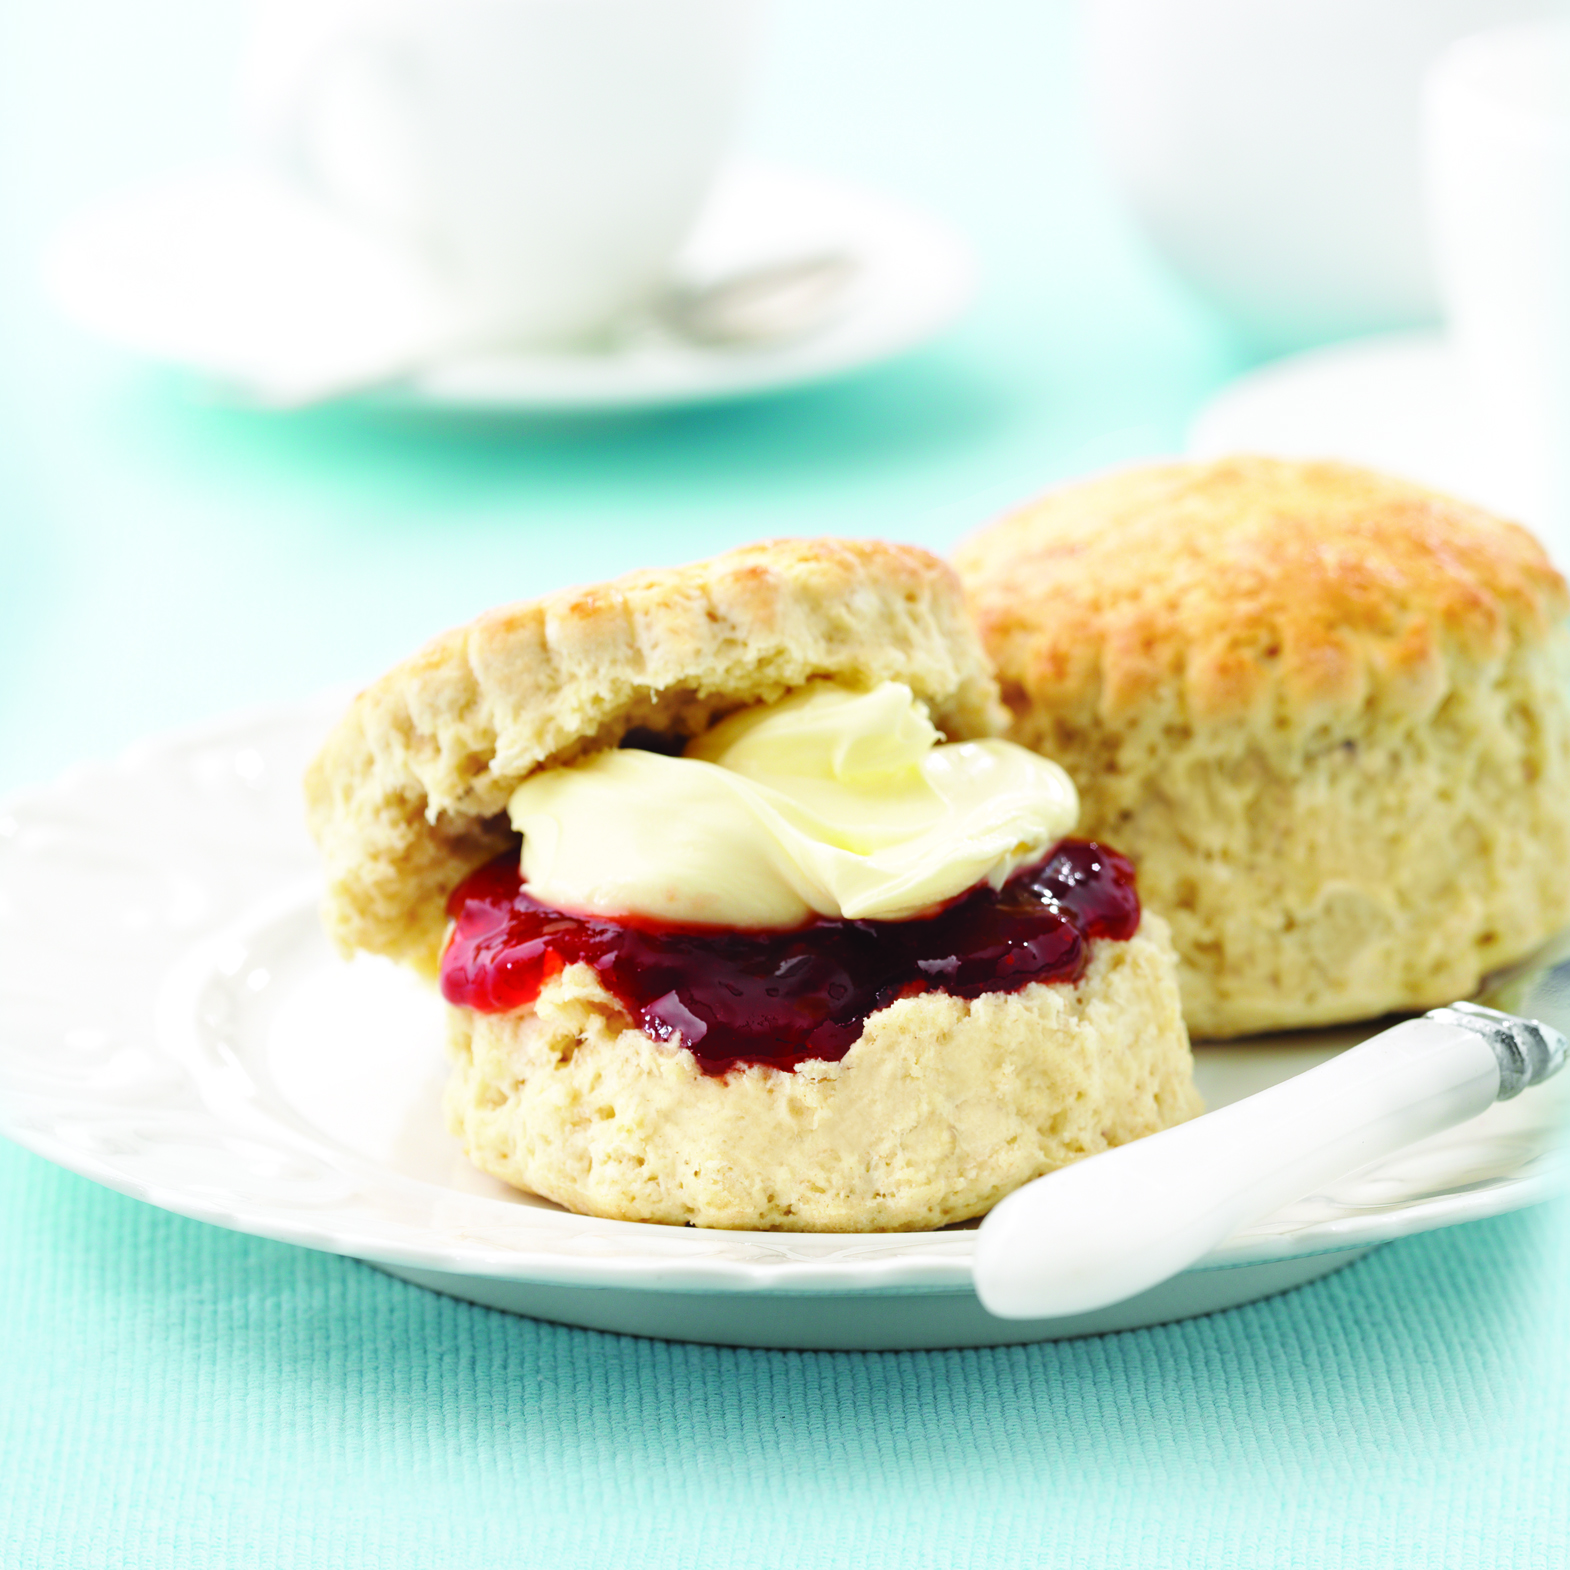 Cream and Jam scones on plate